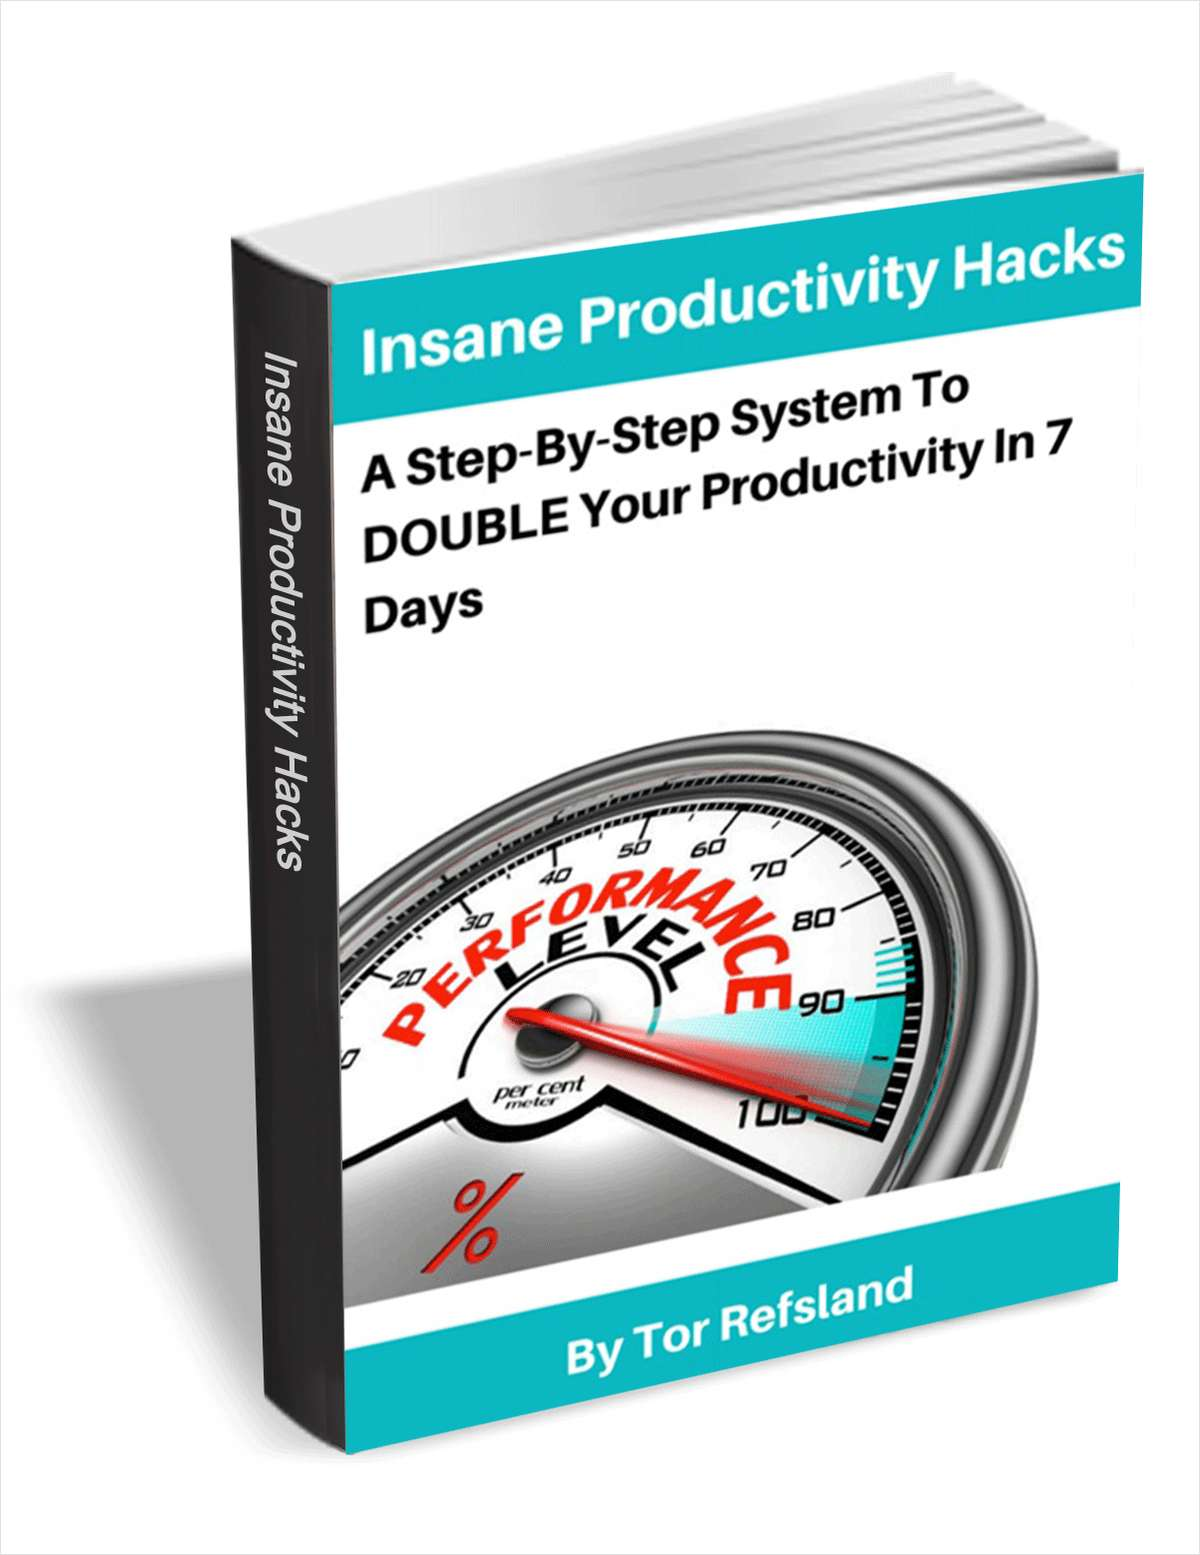 Insane Productivity Hacks - A Step-By-Step System to Double Your Productivity in 7 Days